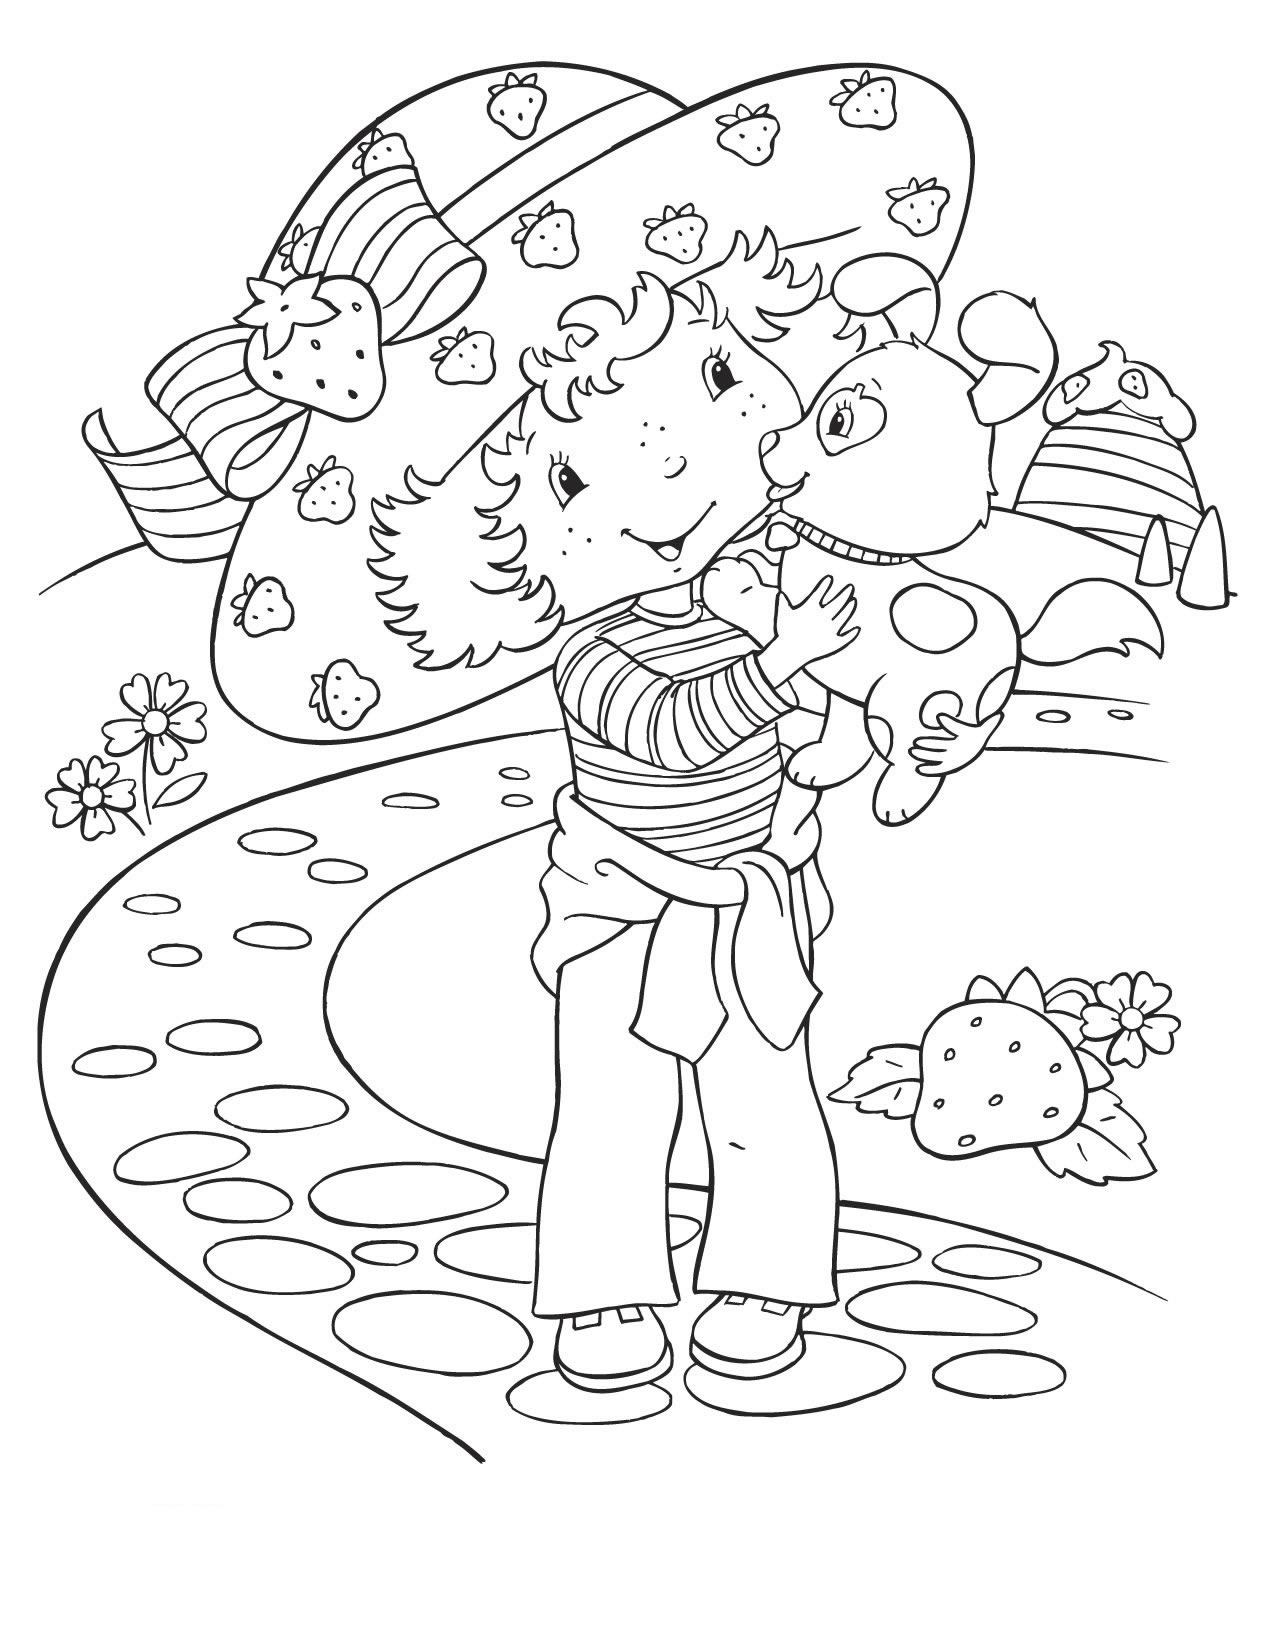 new strawberry shortcake coloring pages printable free printable strawberry shortcake coloring pages for kids printable strawberry shortcake coloring new pages